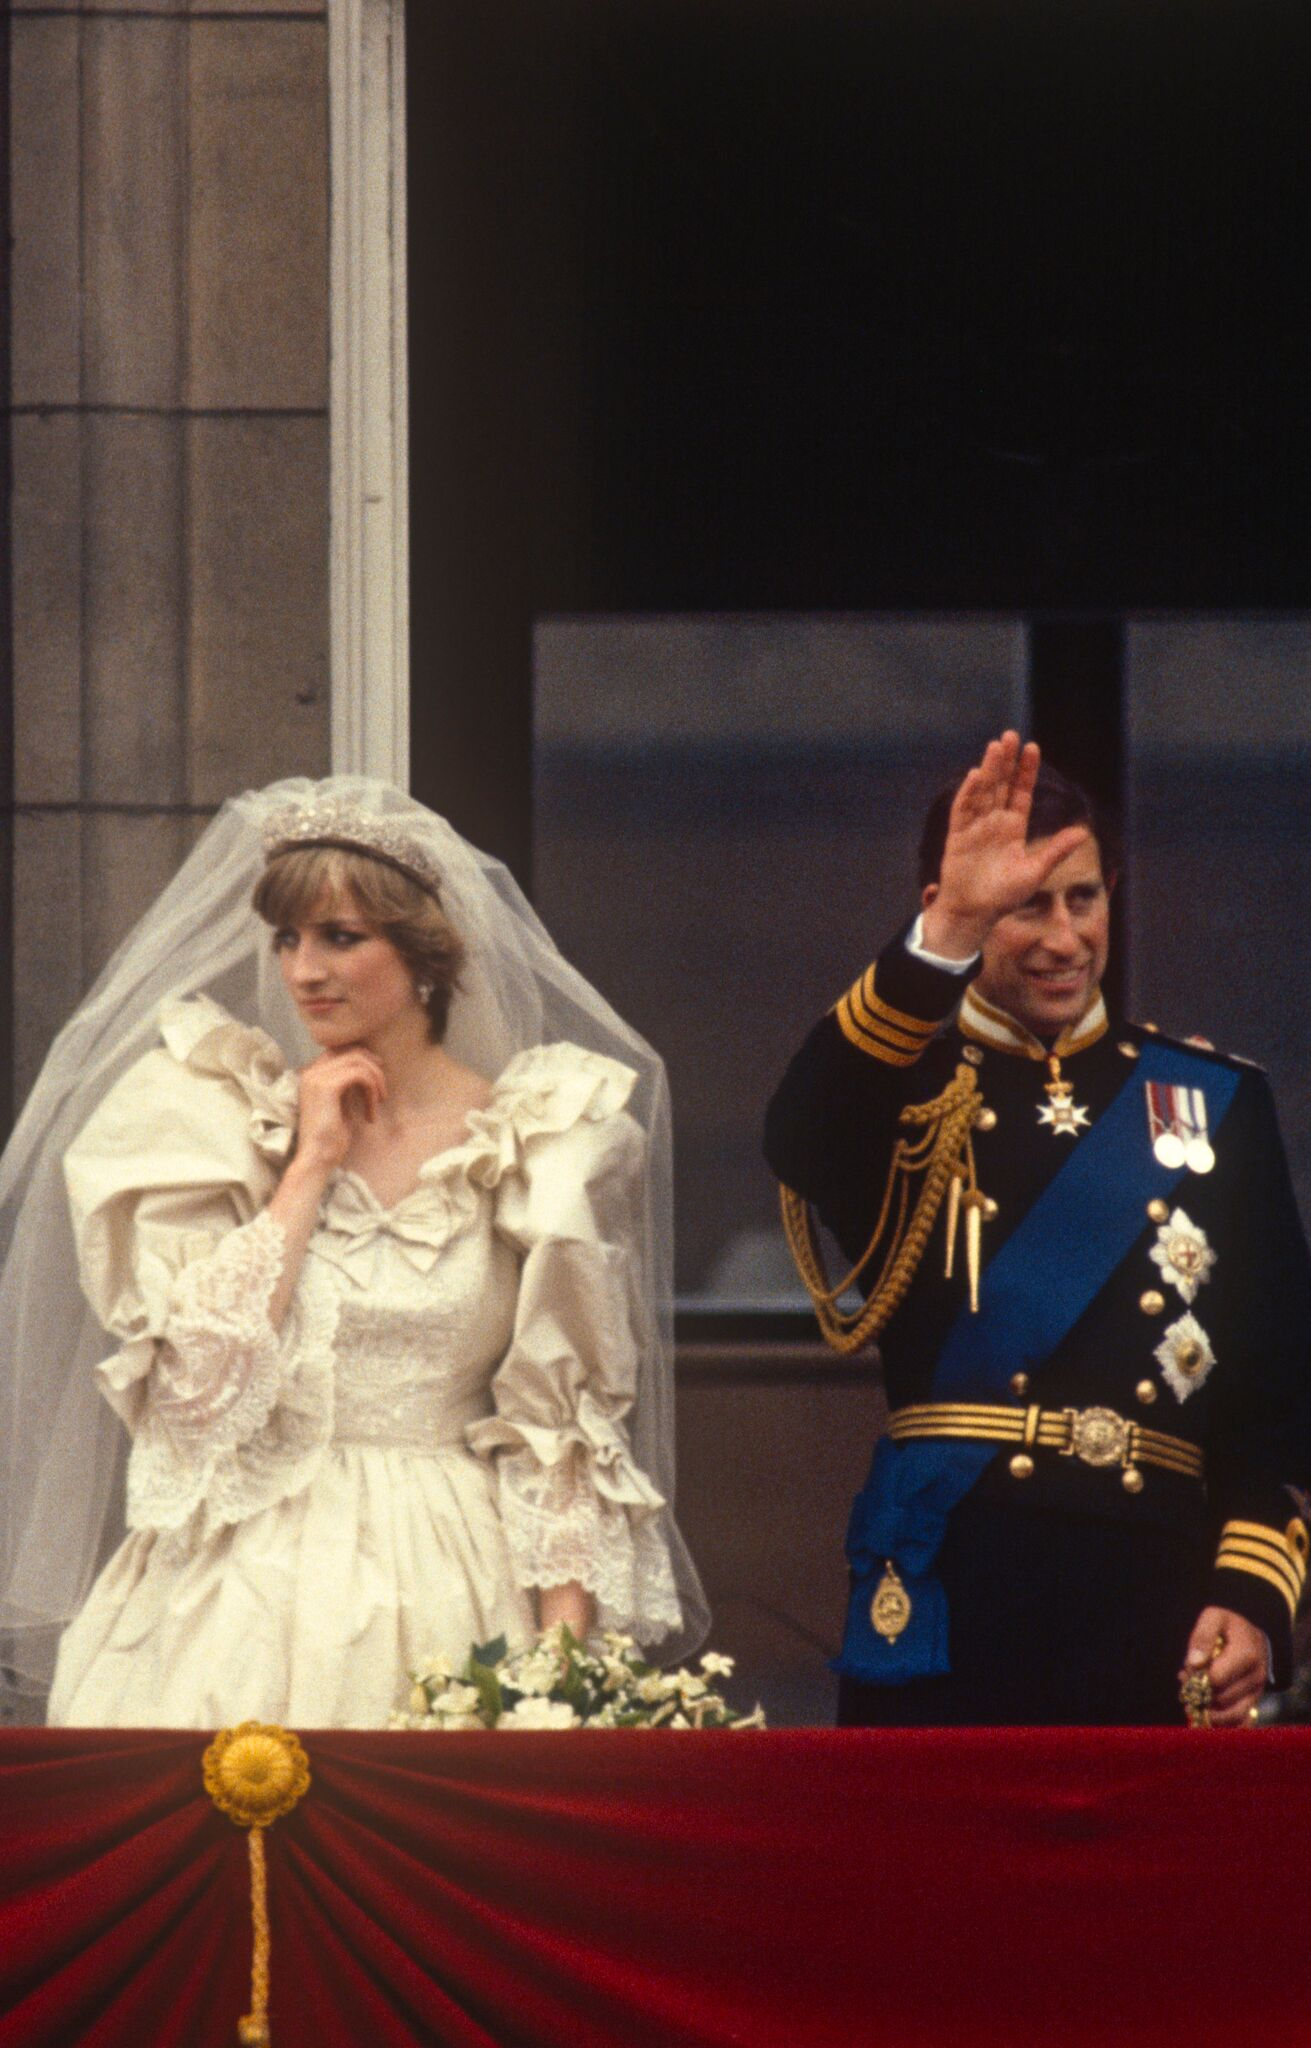 Princess Diana and Prince Charles on the palace balcony on their wedding day | Getty Images